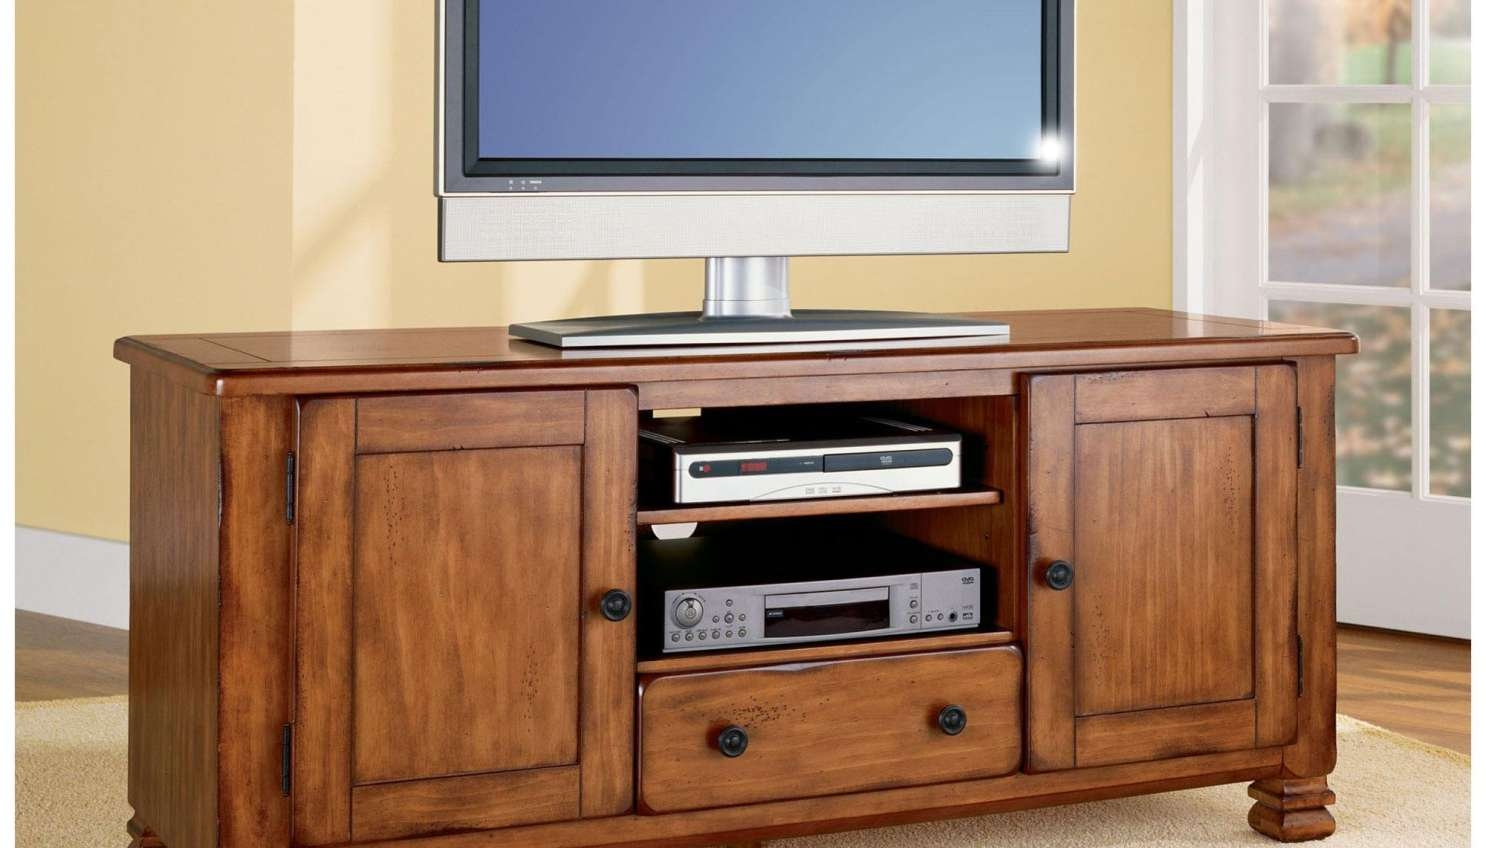 Tv : Astounding Corner Tv Stands For 46 Inch Flat Screen Satiating With Regard To Corner Tv Stands For 46 Inch Flat Screen (View 11 of 15)